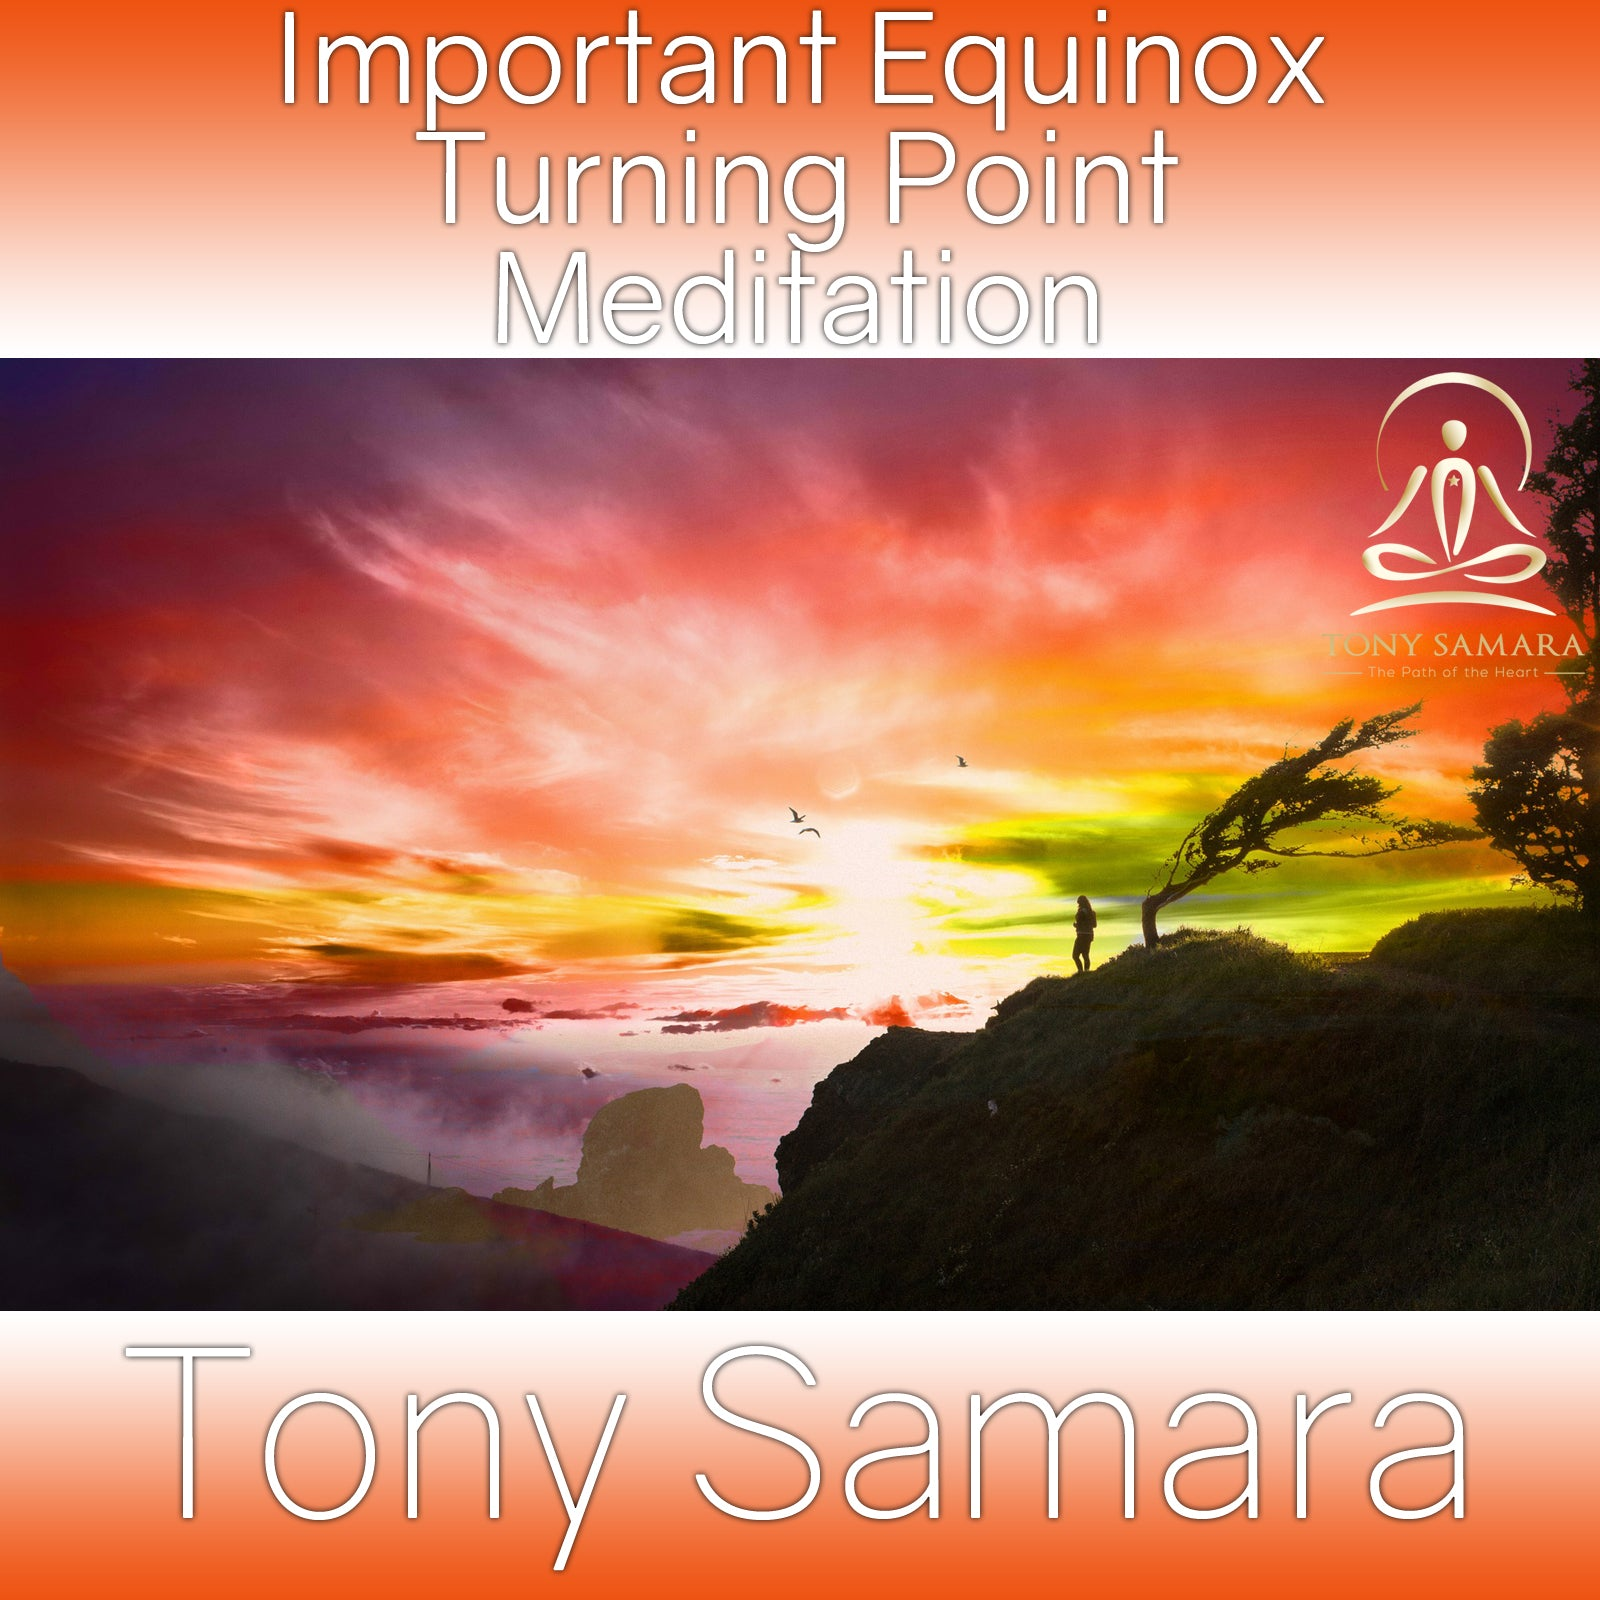 Important Equinox Turning Point Meditation (MP3 Audio Download) - Tony Samara Meditation